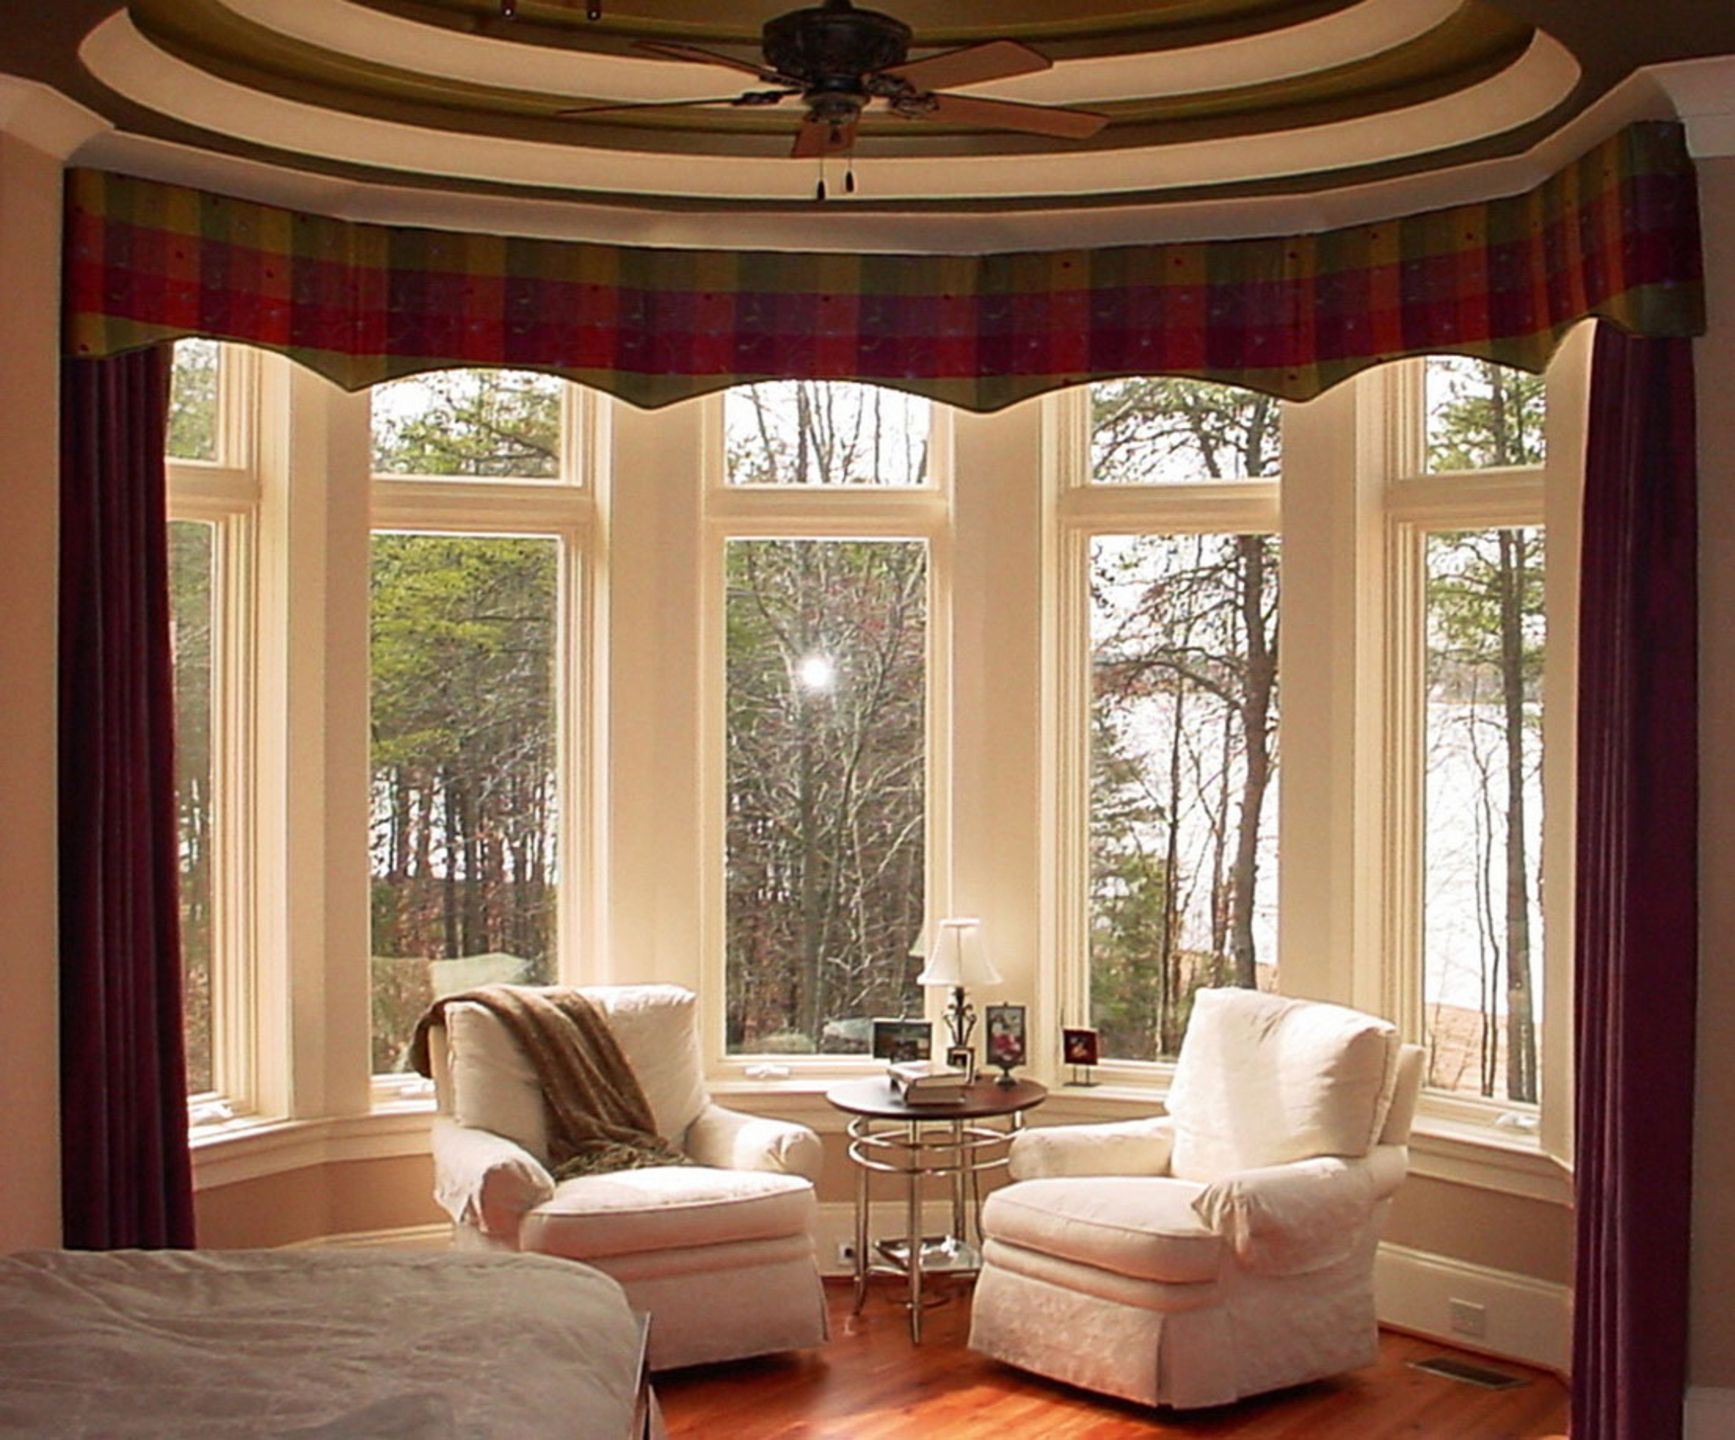 pinpanama aims on fenster | pinterest | best living room